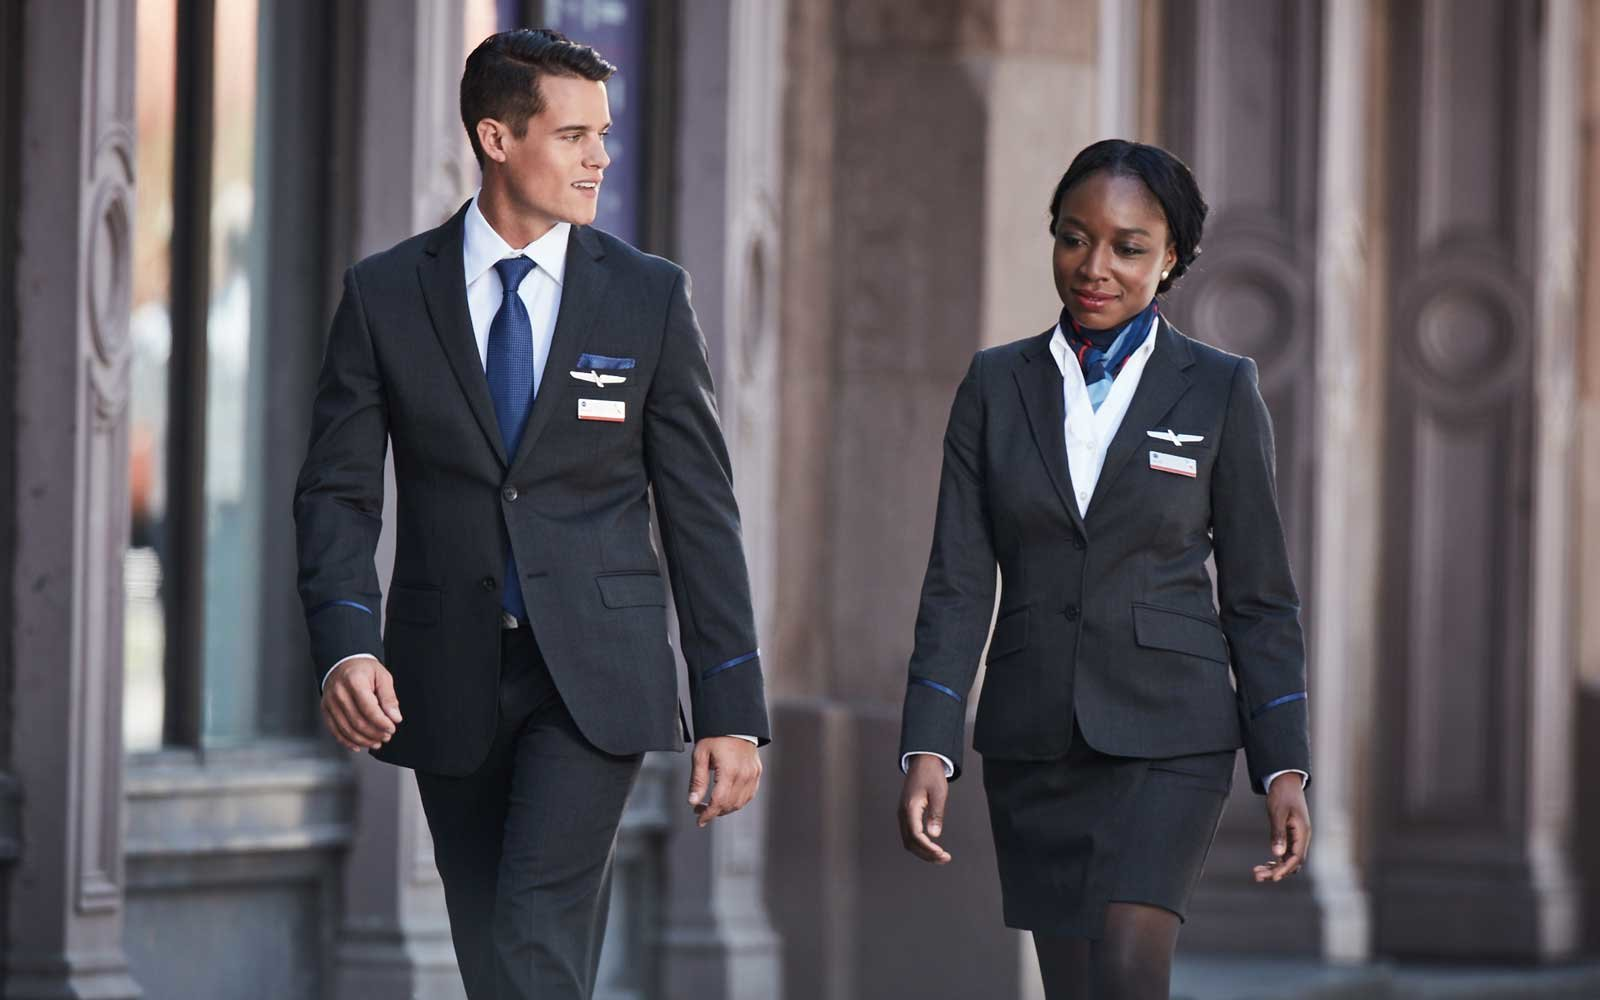 American Airlines Flight Attendant Uniforms